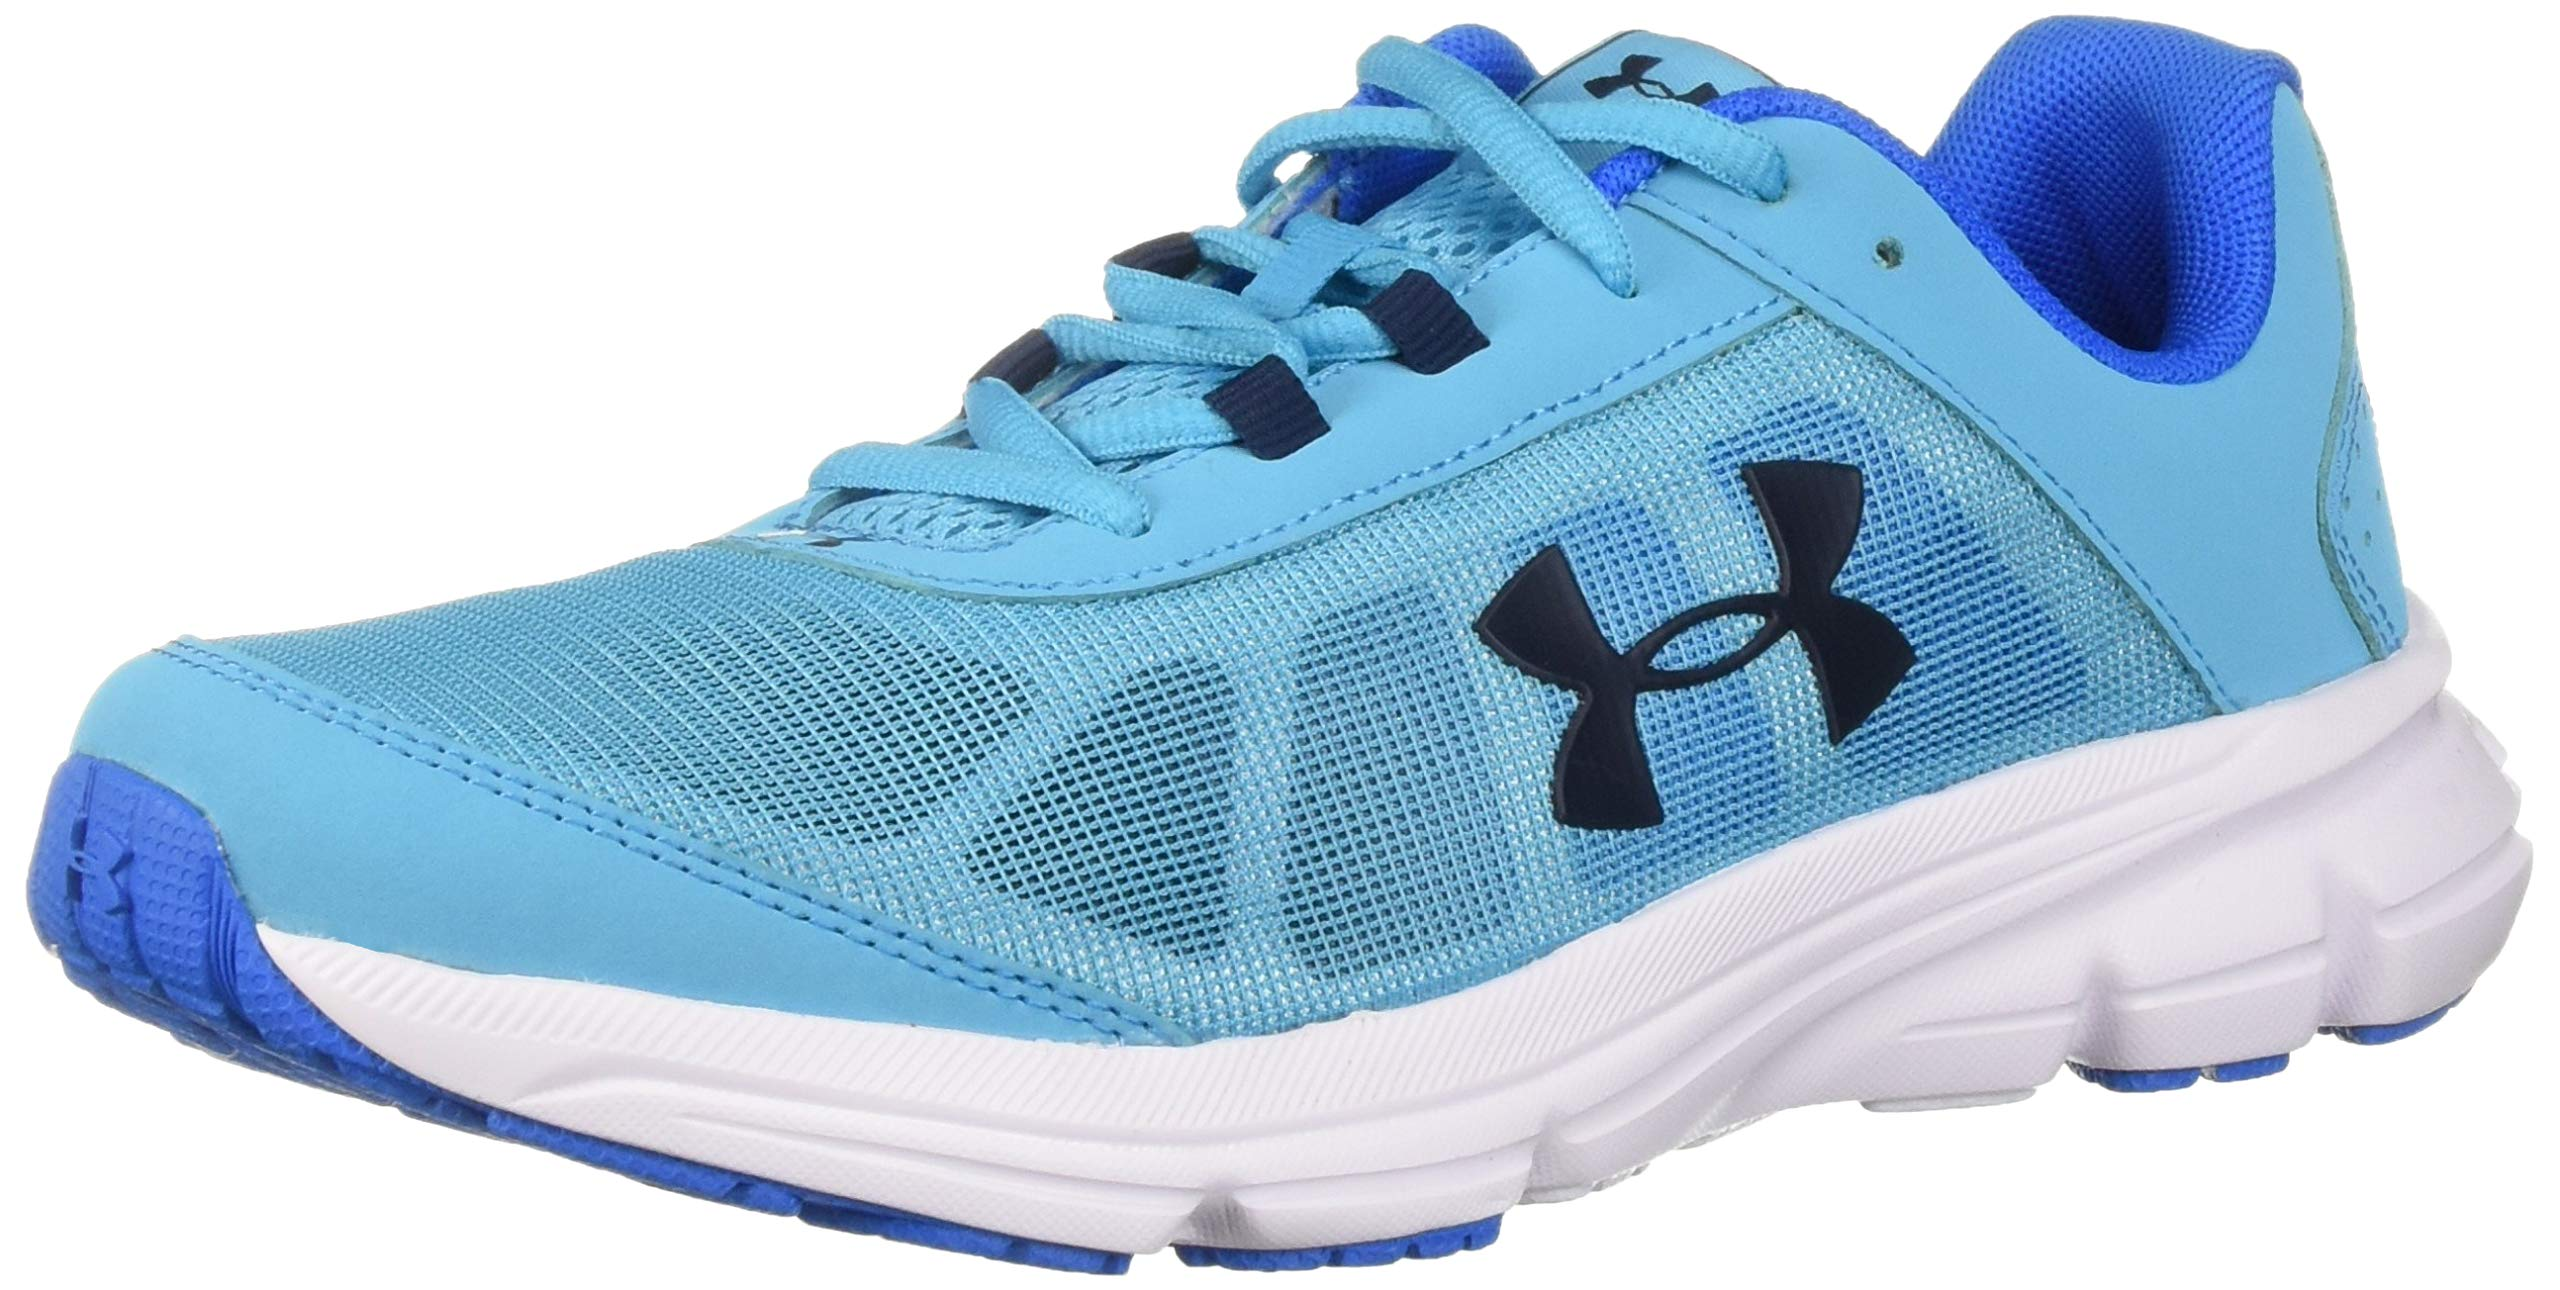 Under Armour Girls' Grade School Rave 2 Sneaker Alpine (301)/Blue Circuit 3.5 by Under Armour (Image #1)